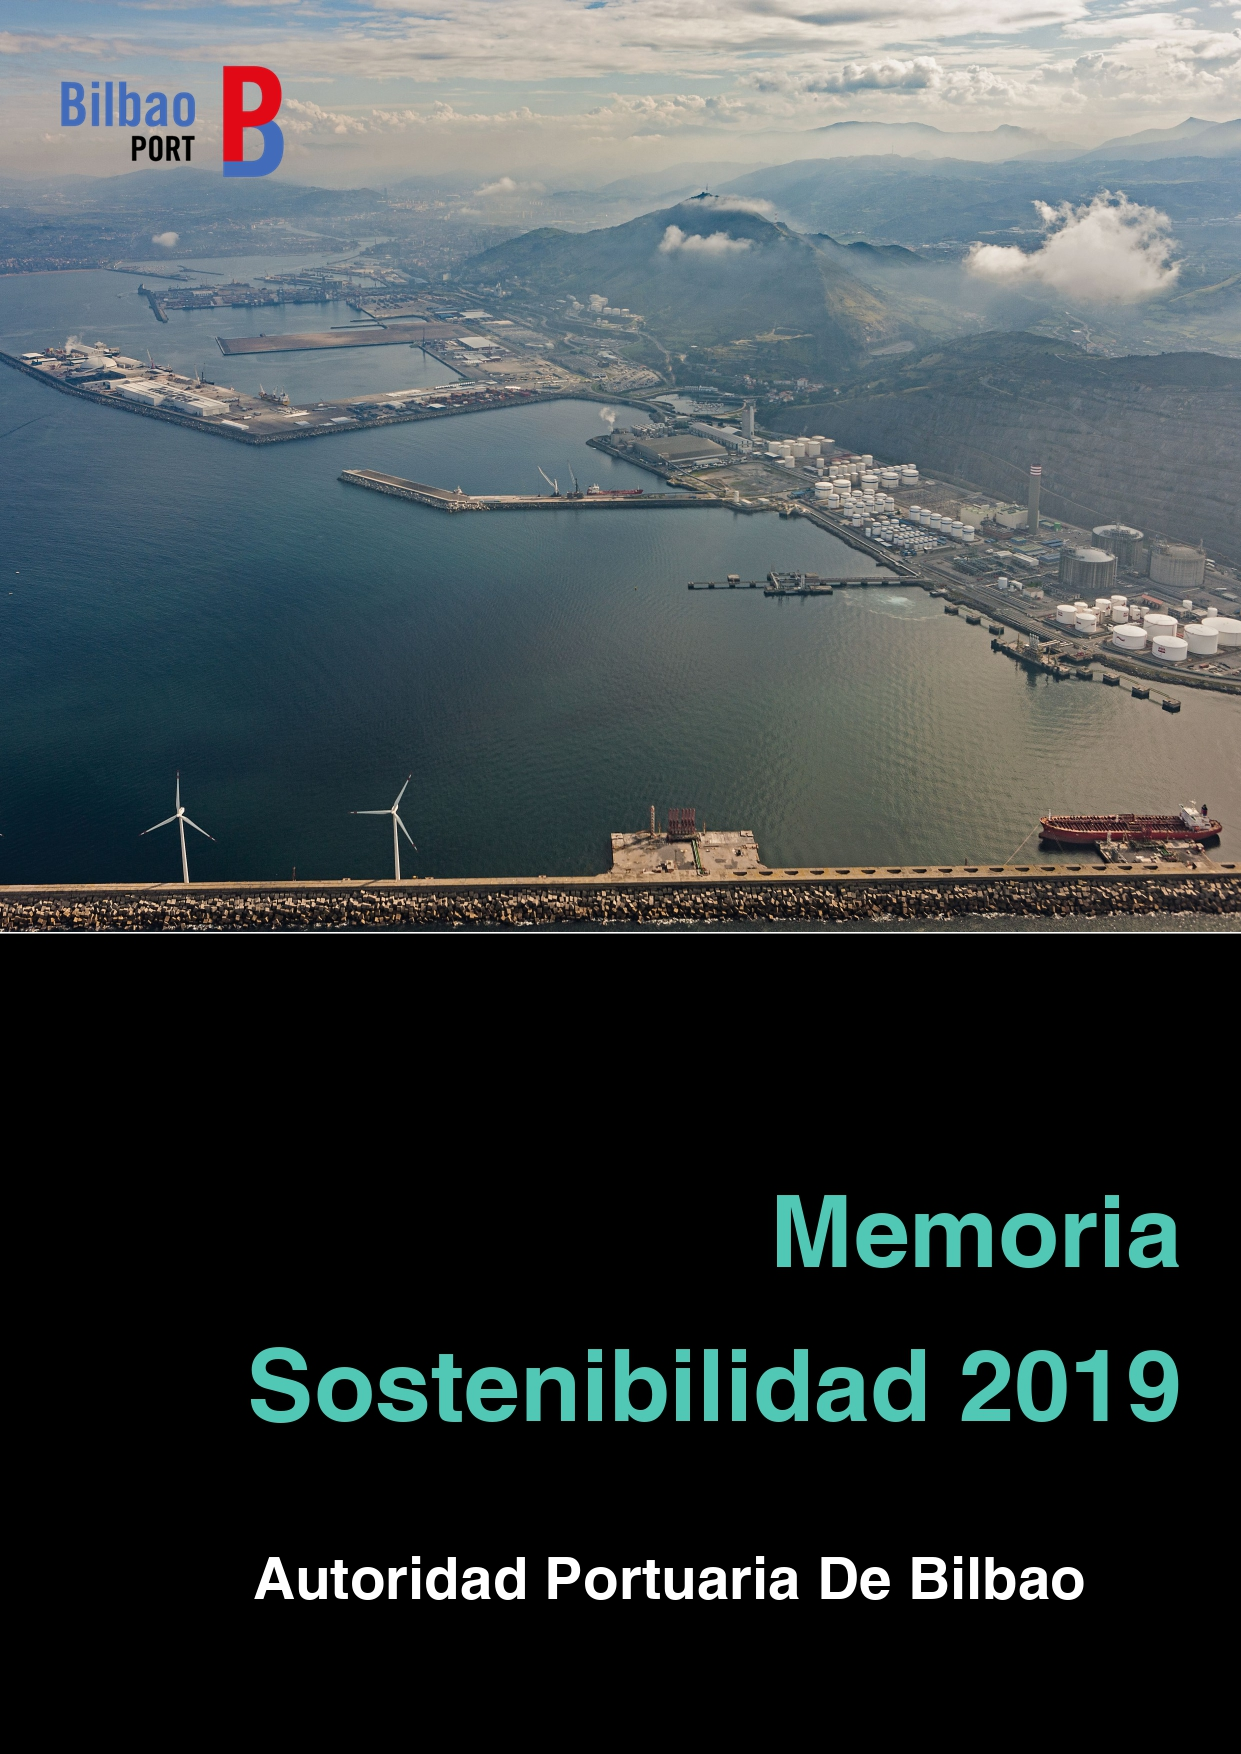 Link to the sustainability policy of the Port Authority of Bilbao